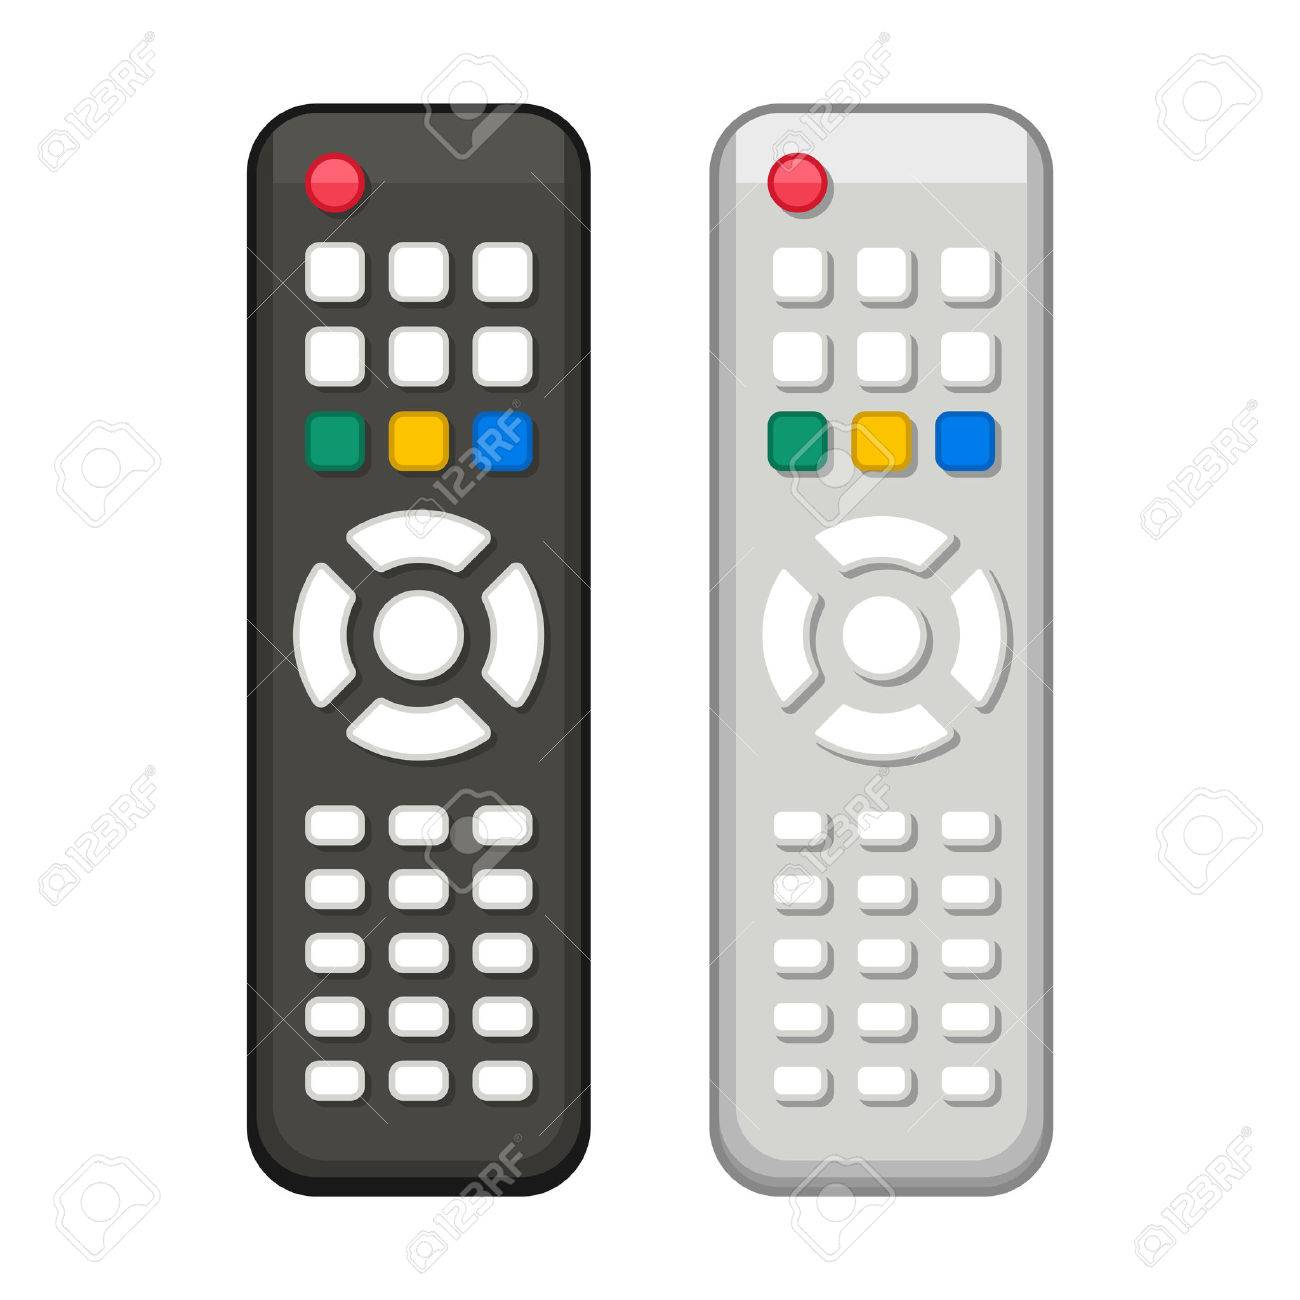 TV Remote Control in Black and White Design. Vector.